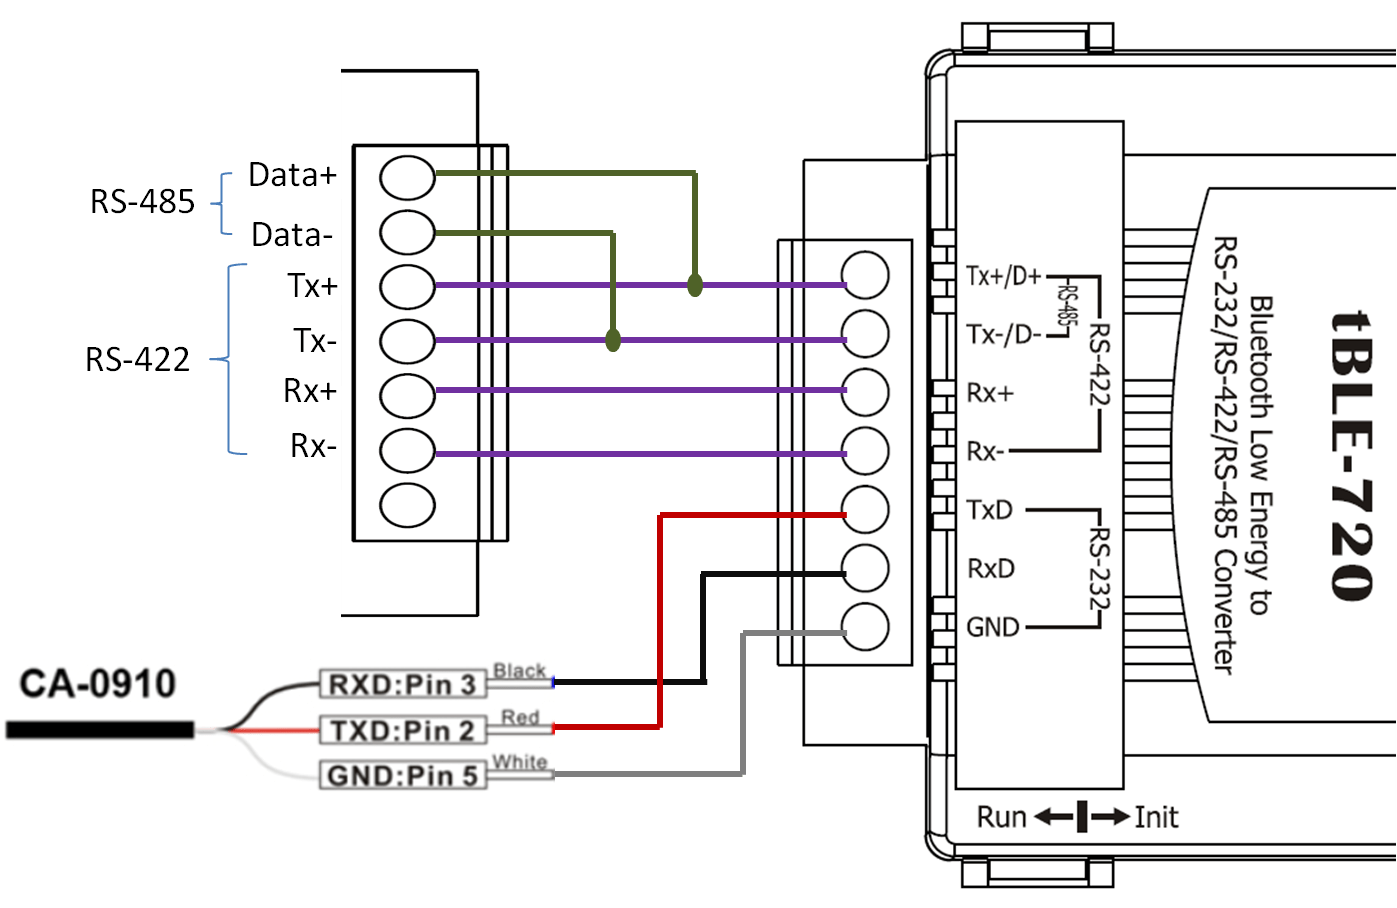 hight resolution of quick start user s manual pin assignment wire connection